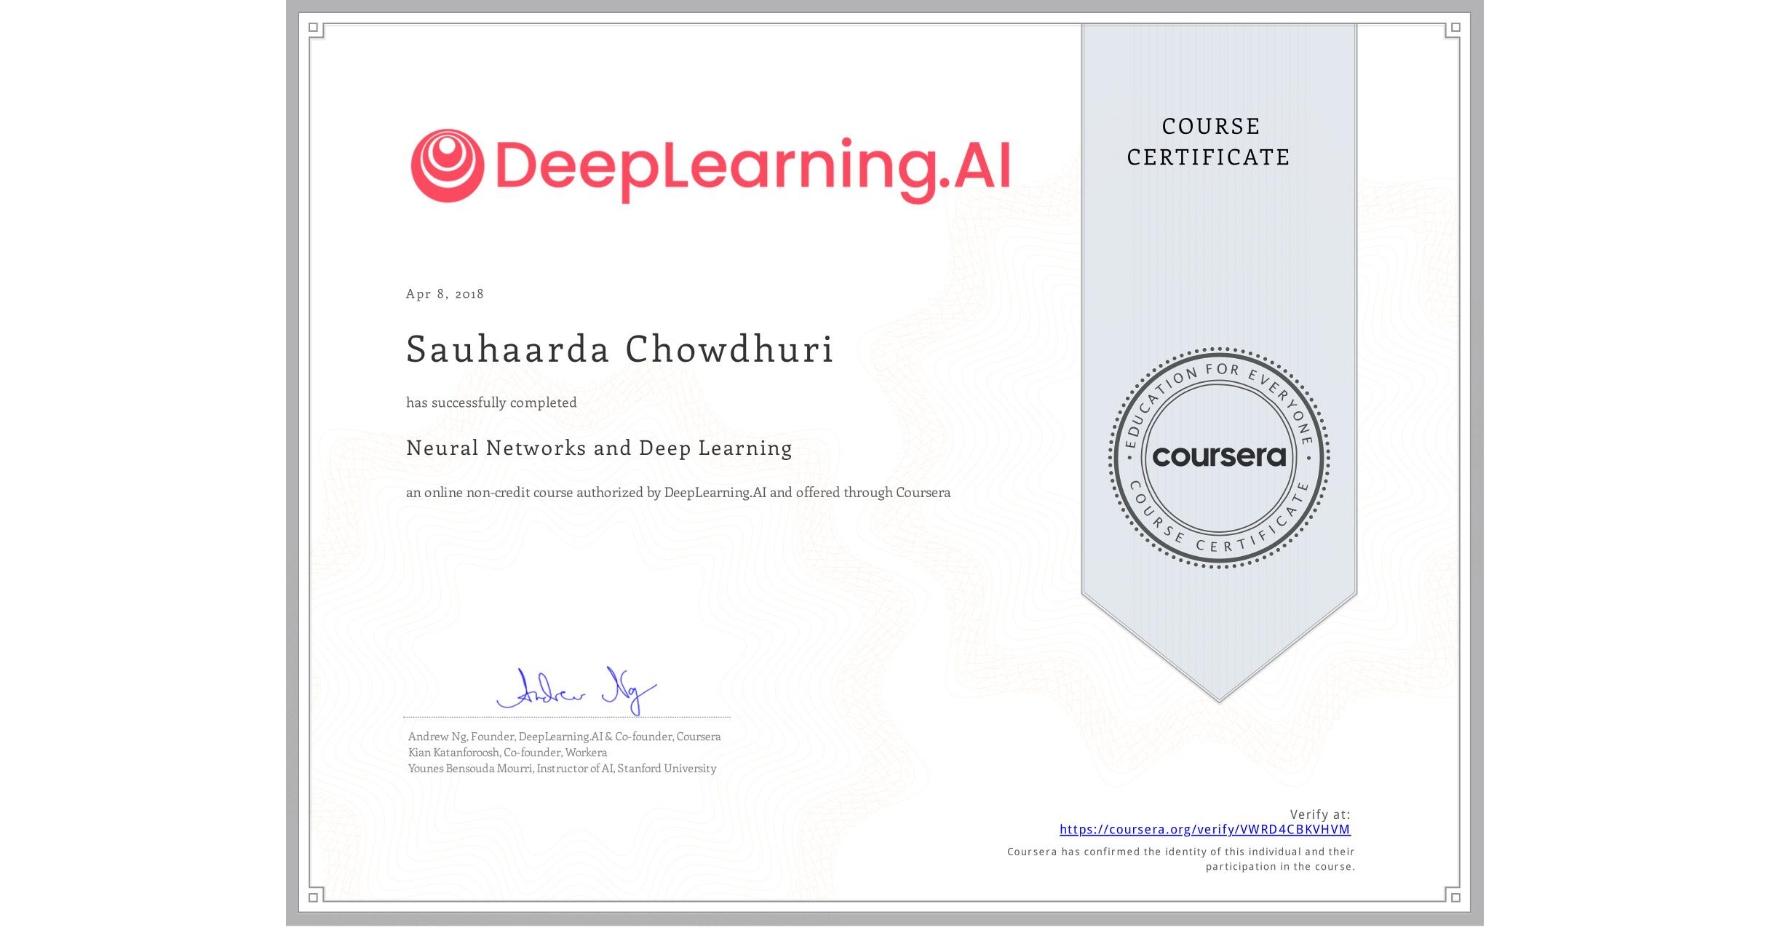 View certificate for Sauhaarda Chowdhuri, Neural Networks and Deep Learning, an online non-credit course authorized by DeepLearning.AI and offered through Coursera